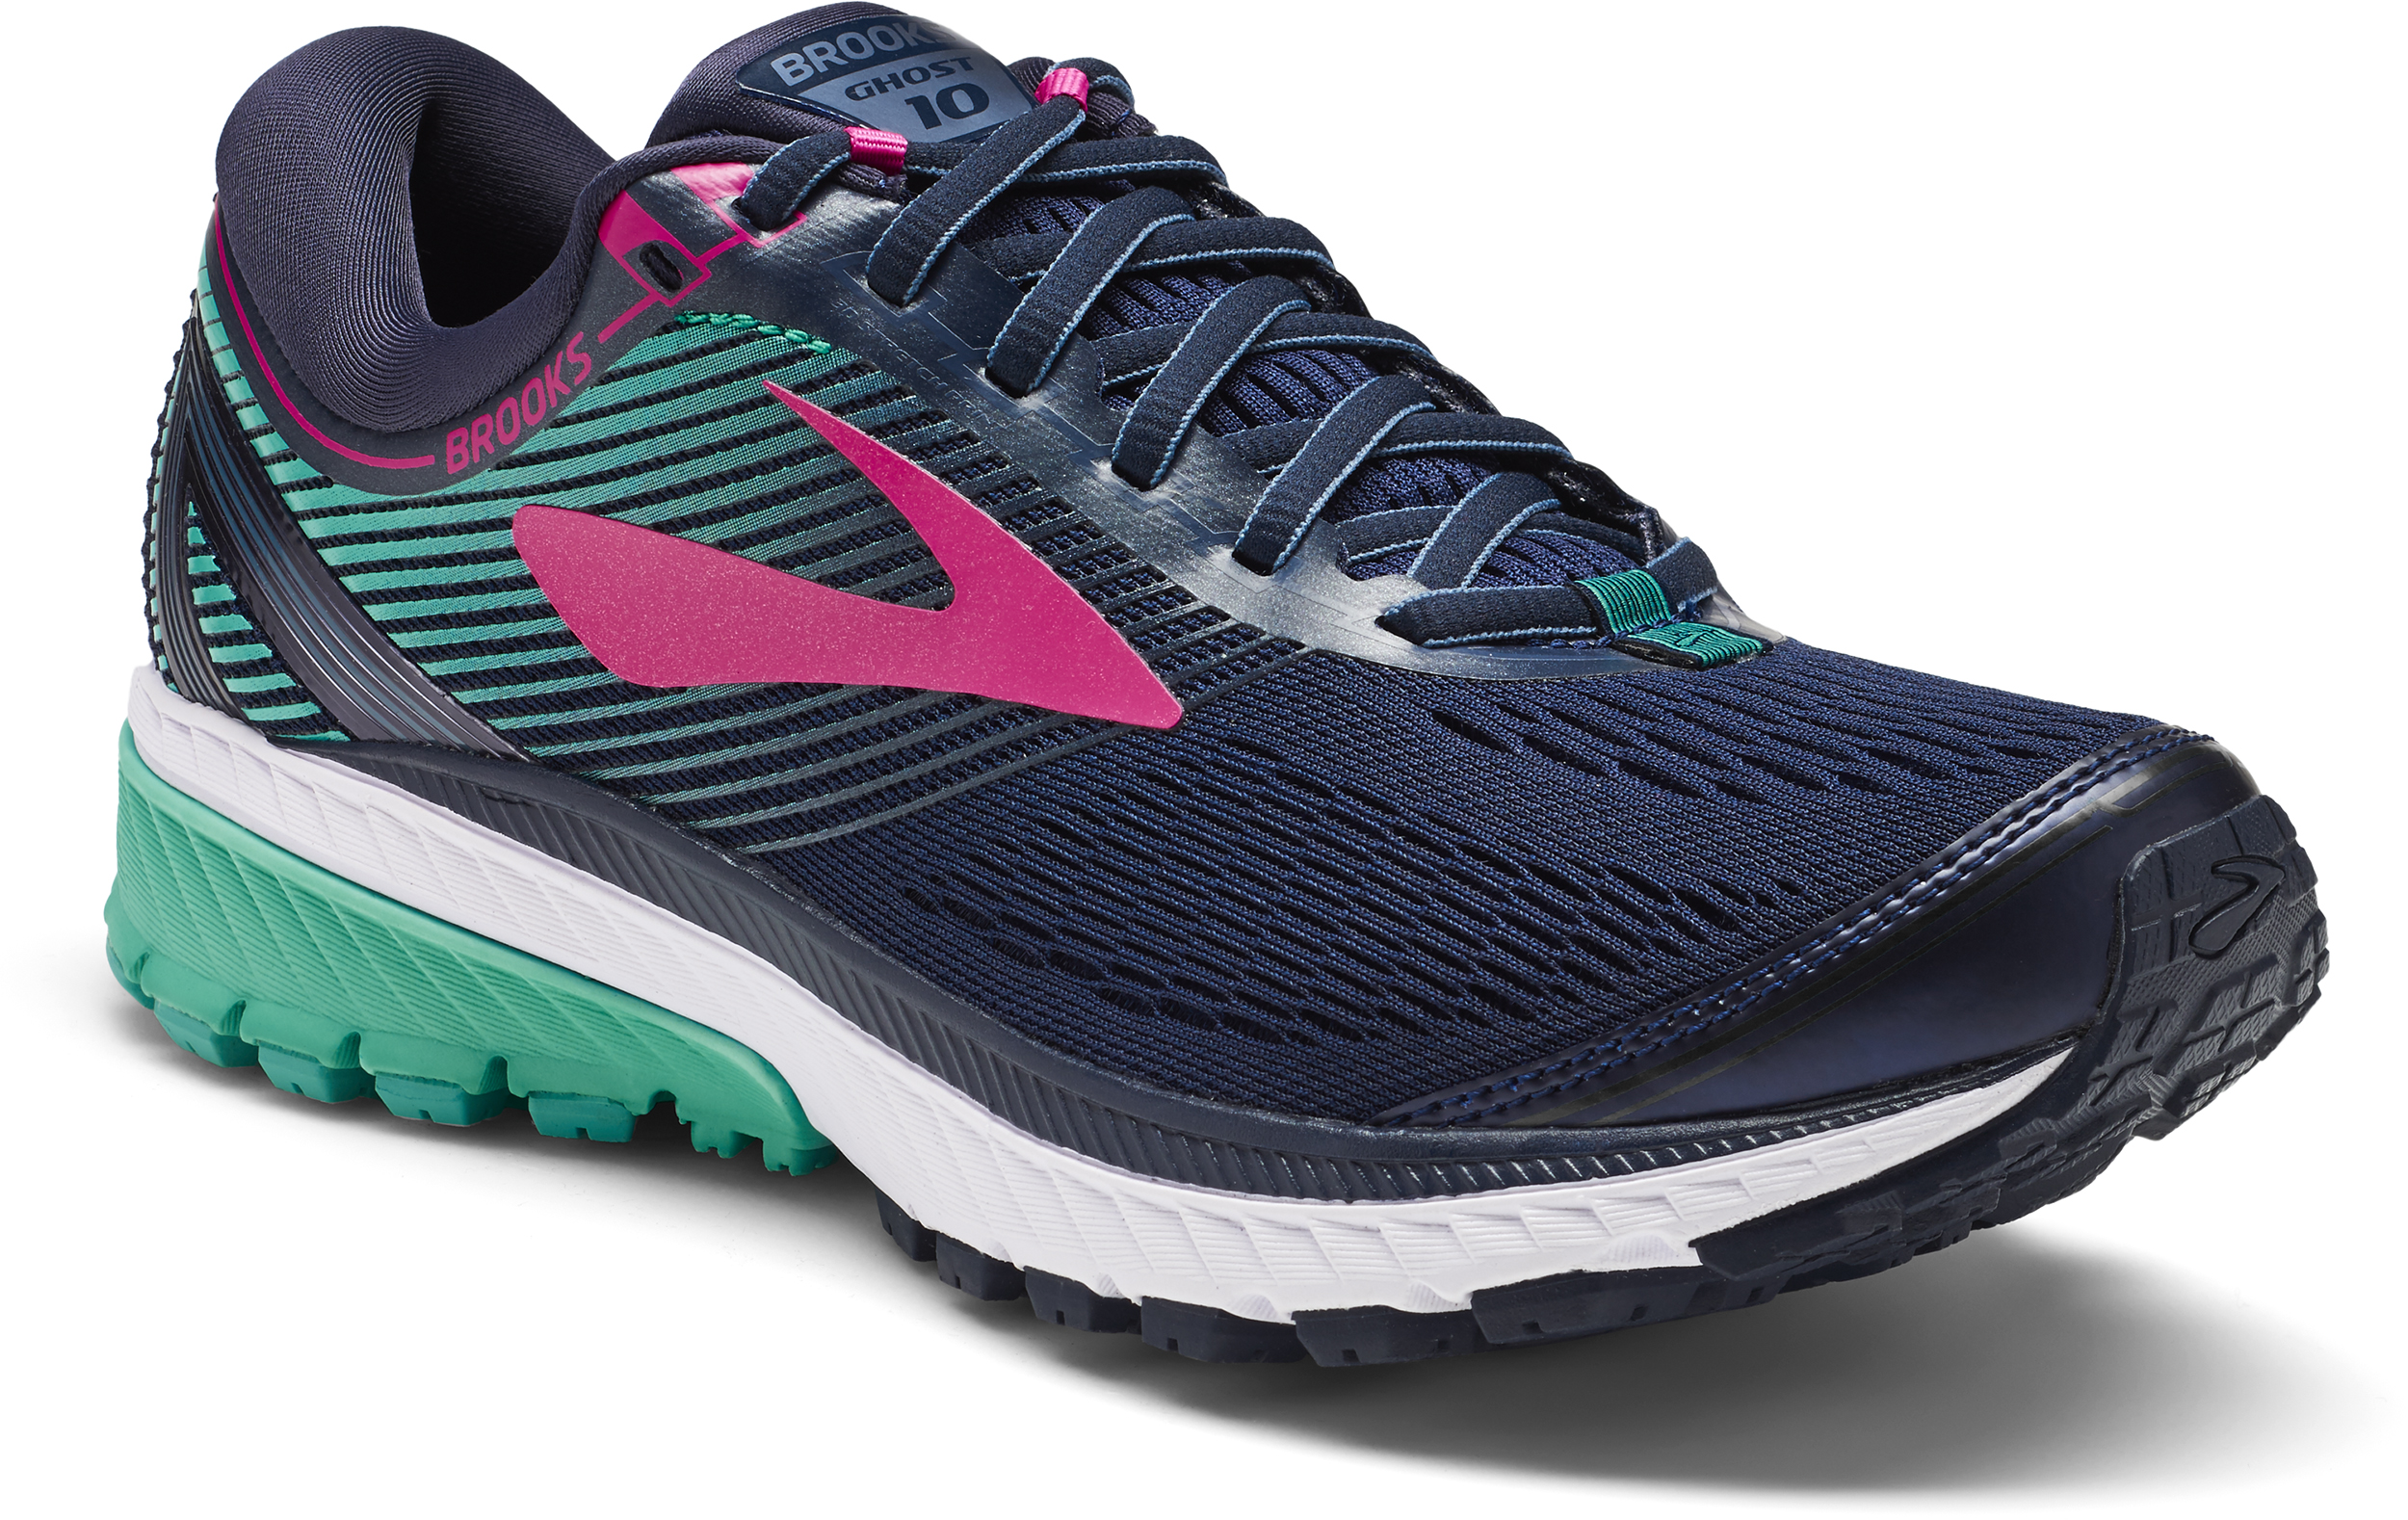 4538b06c510 Brooks Ghost 10 Road Runnings Shoes - Women s